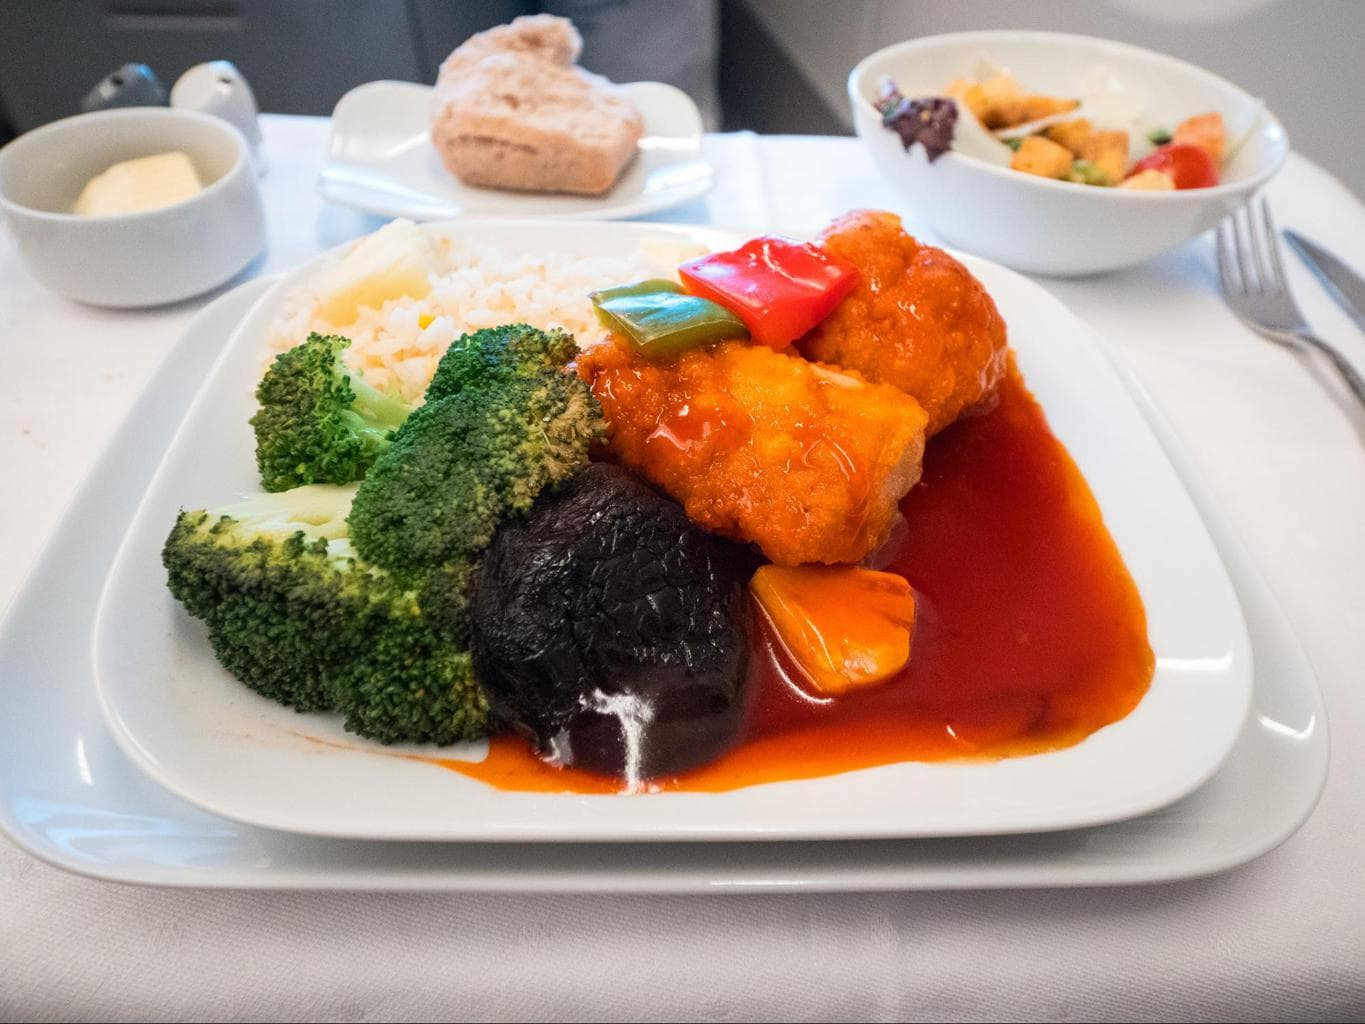 Lufthansa Business Class food - Sweet and sour garoupa